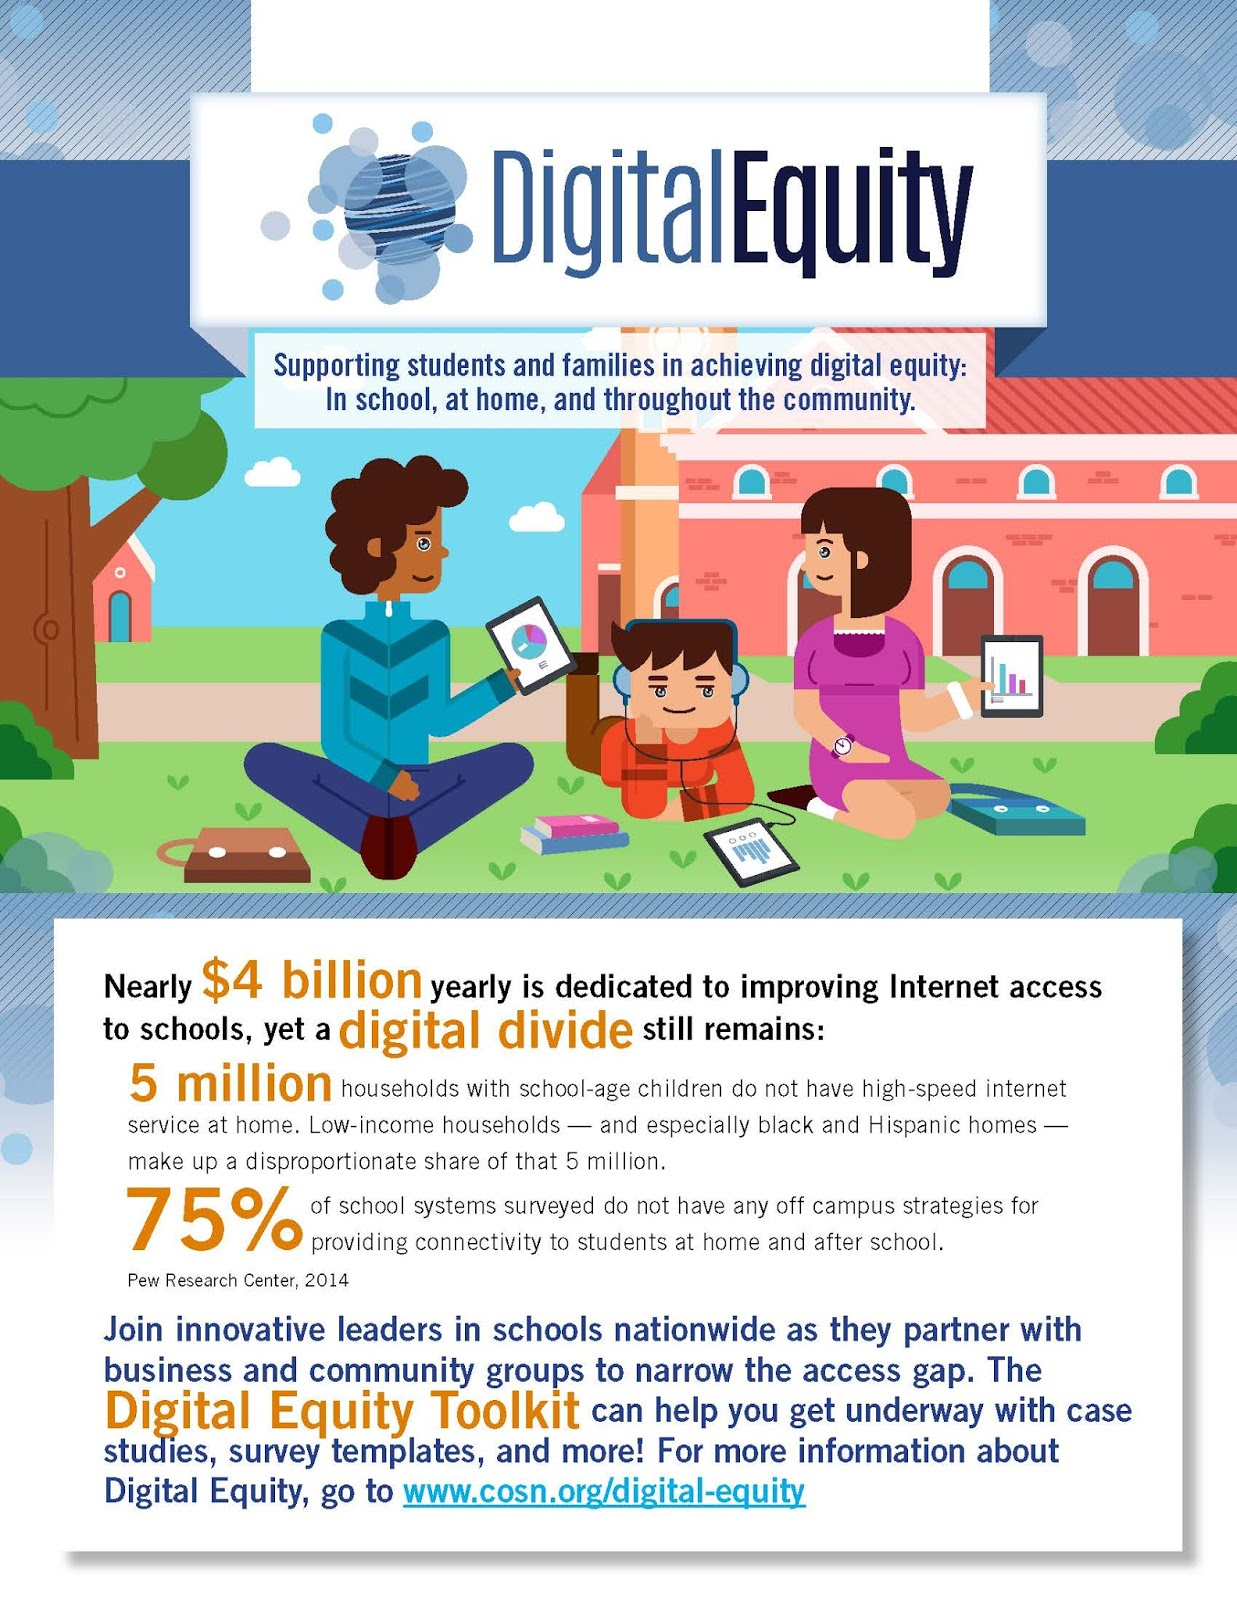 digital equity Recent research on digital media use points to two important gaps in educational opportunity for low-income families with young children first, there is an access gap.